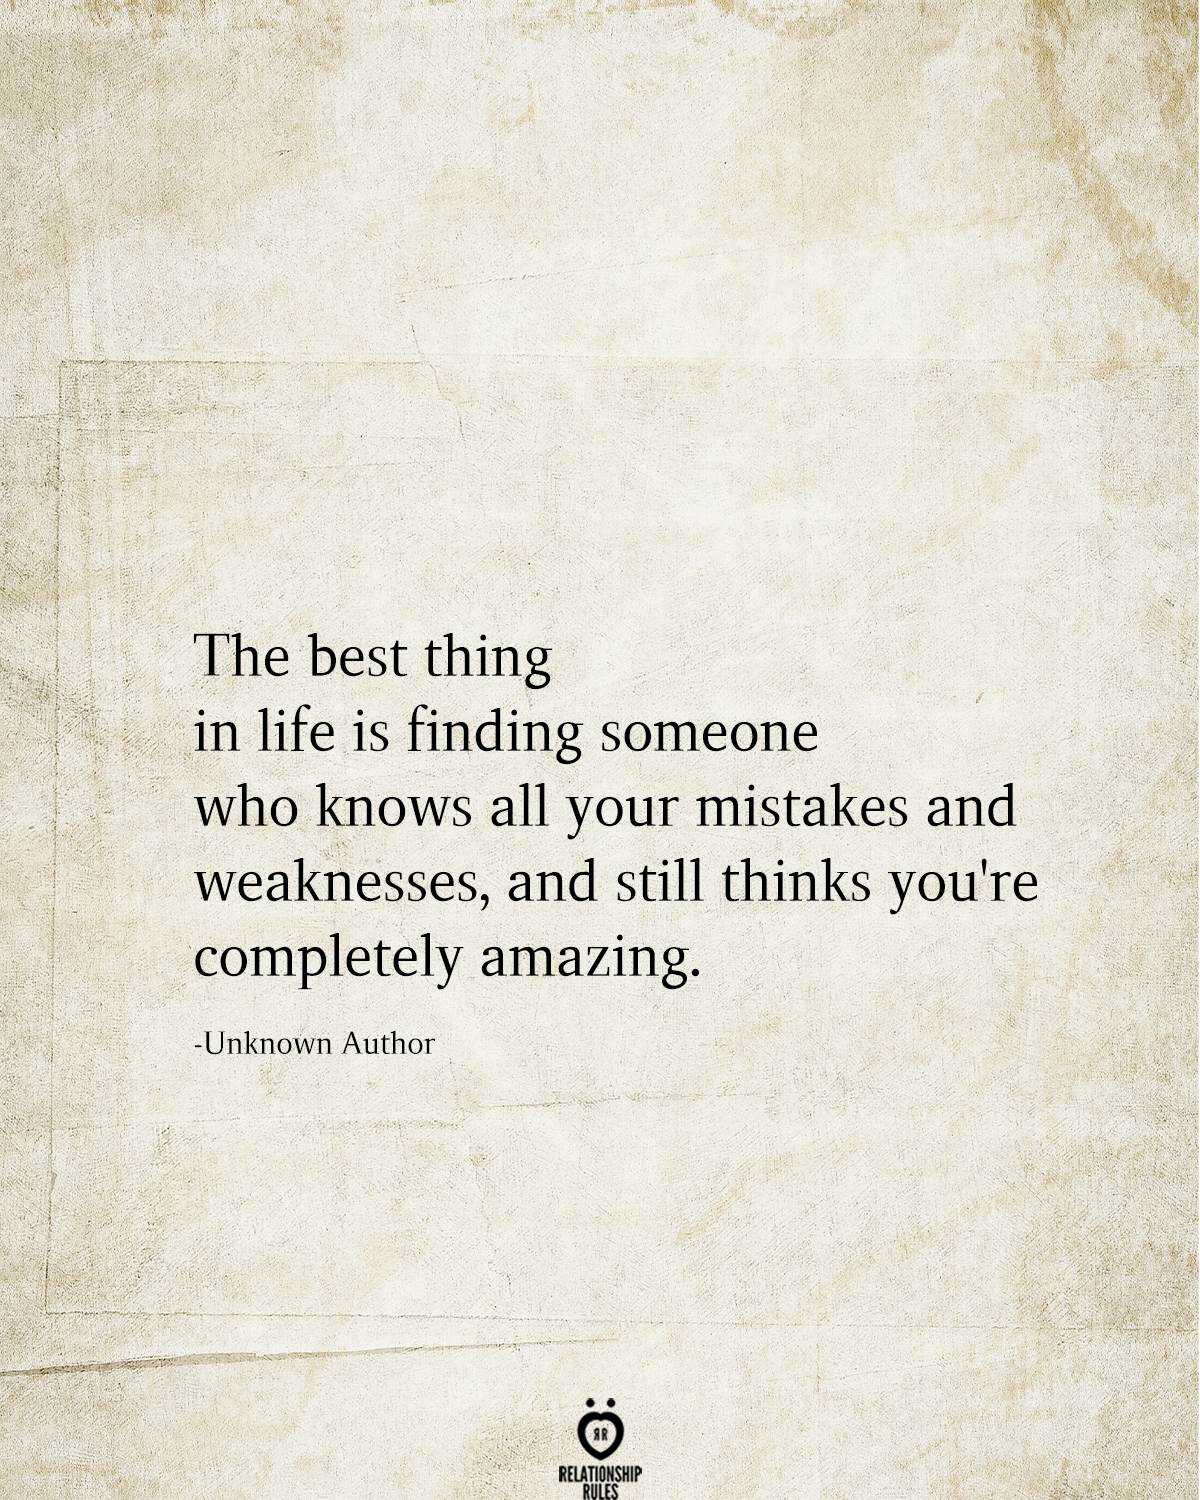 The Best Thing In Life Is Finding Someone Who Knows All Your